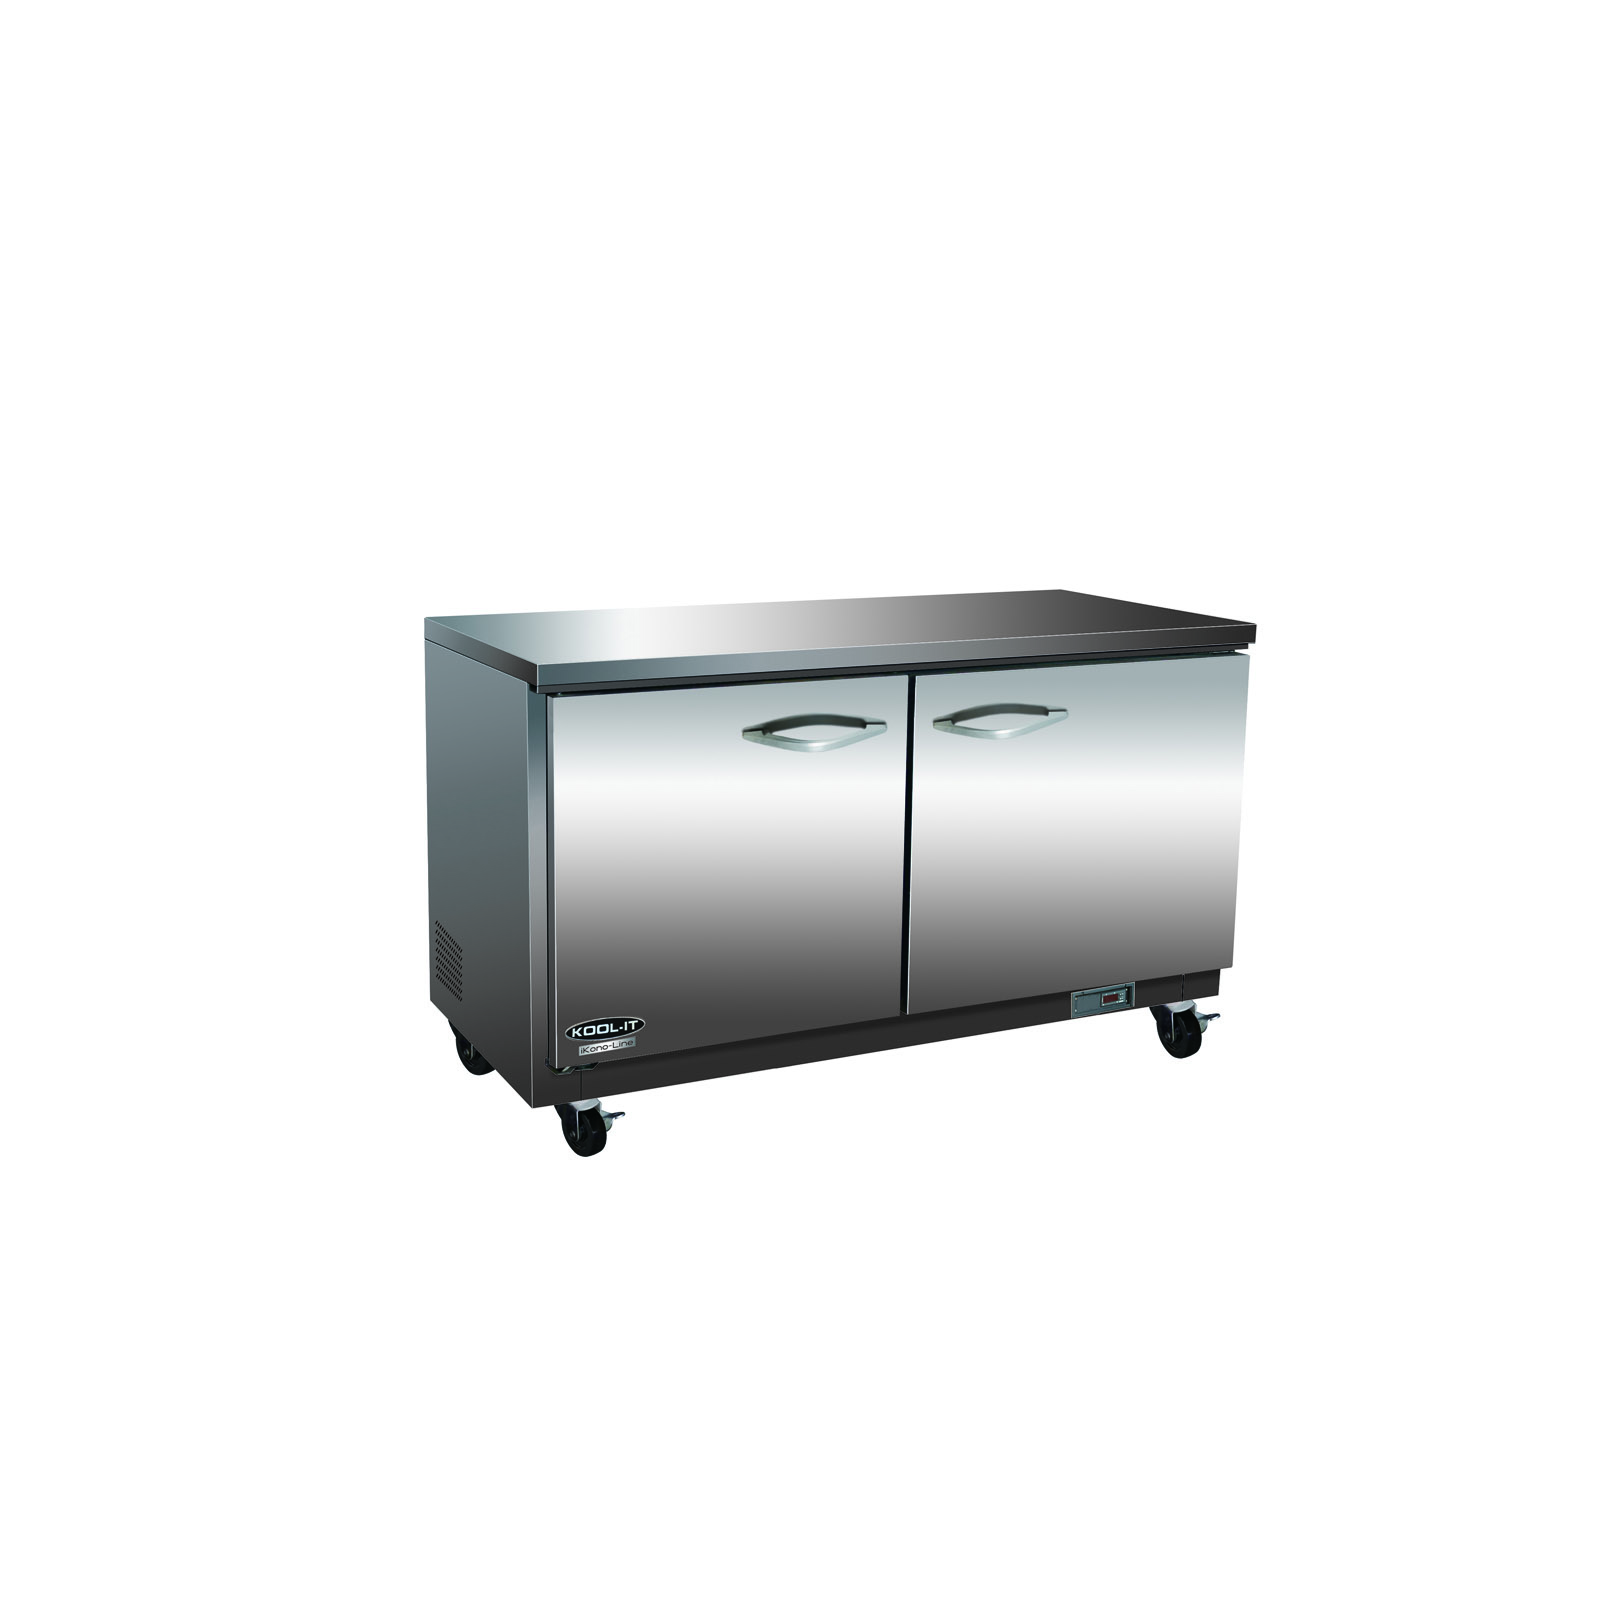 MVP Group LLC IUC61R-2D refrigerator, undercounter, reach-in